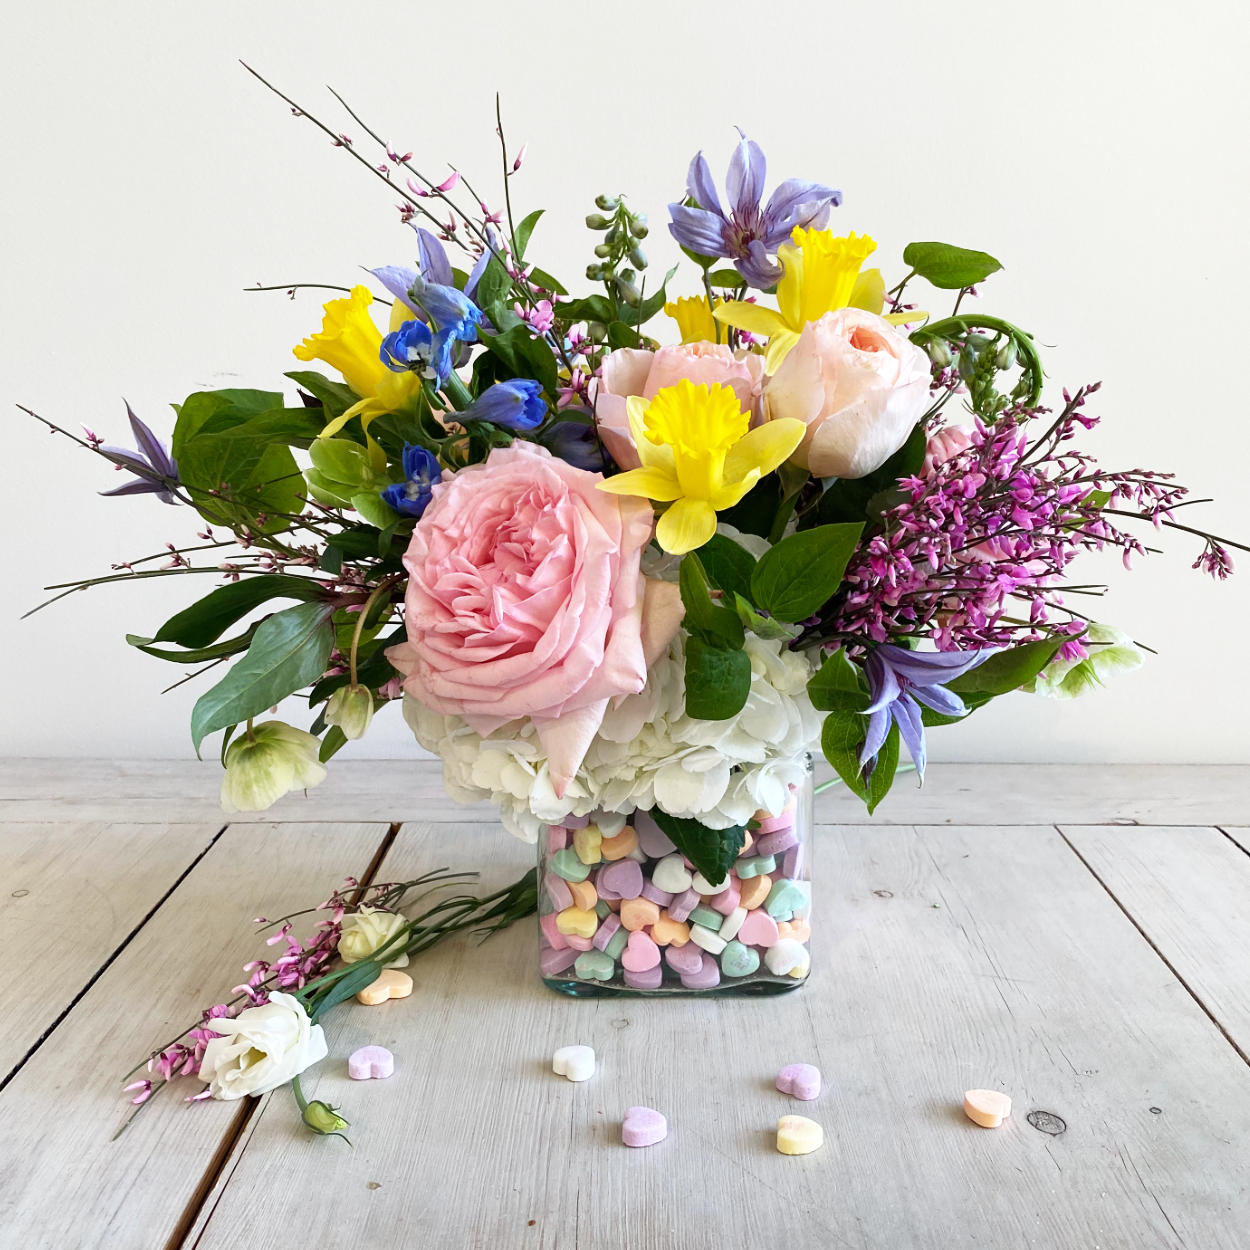 A cube arrangement featuring a mix of spring blooms. Pink O'Hara Garden Roses, Juliet Roses, Daffs, Hellebore, Clematis, and Heather Flowers. With edible conversation hearts.